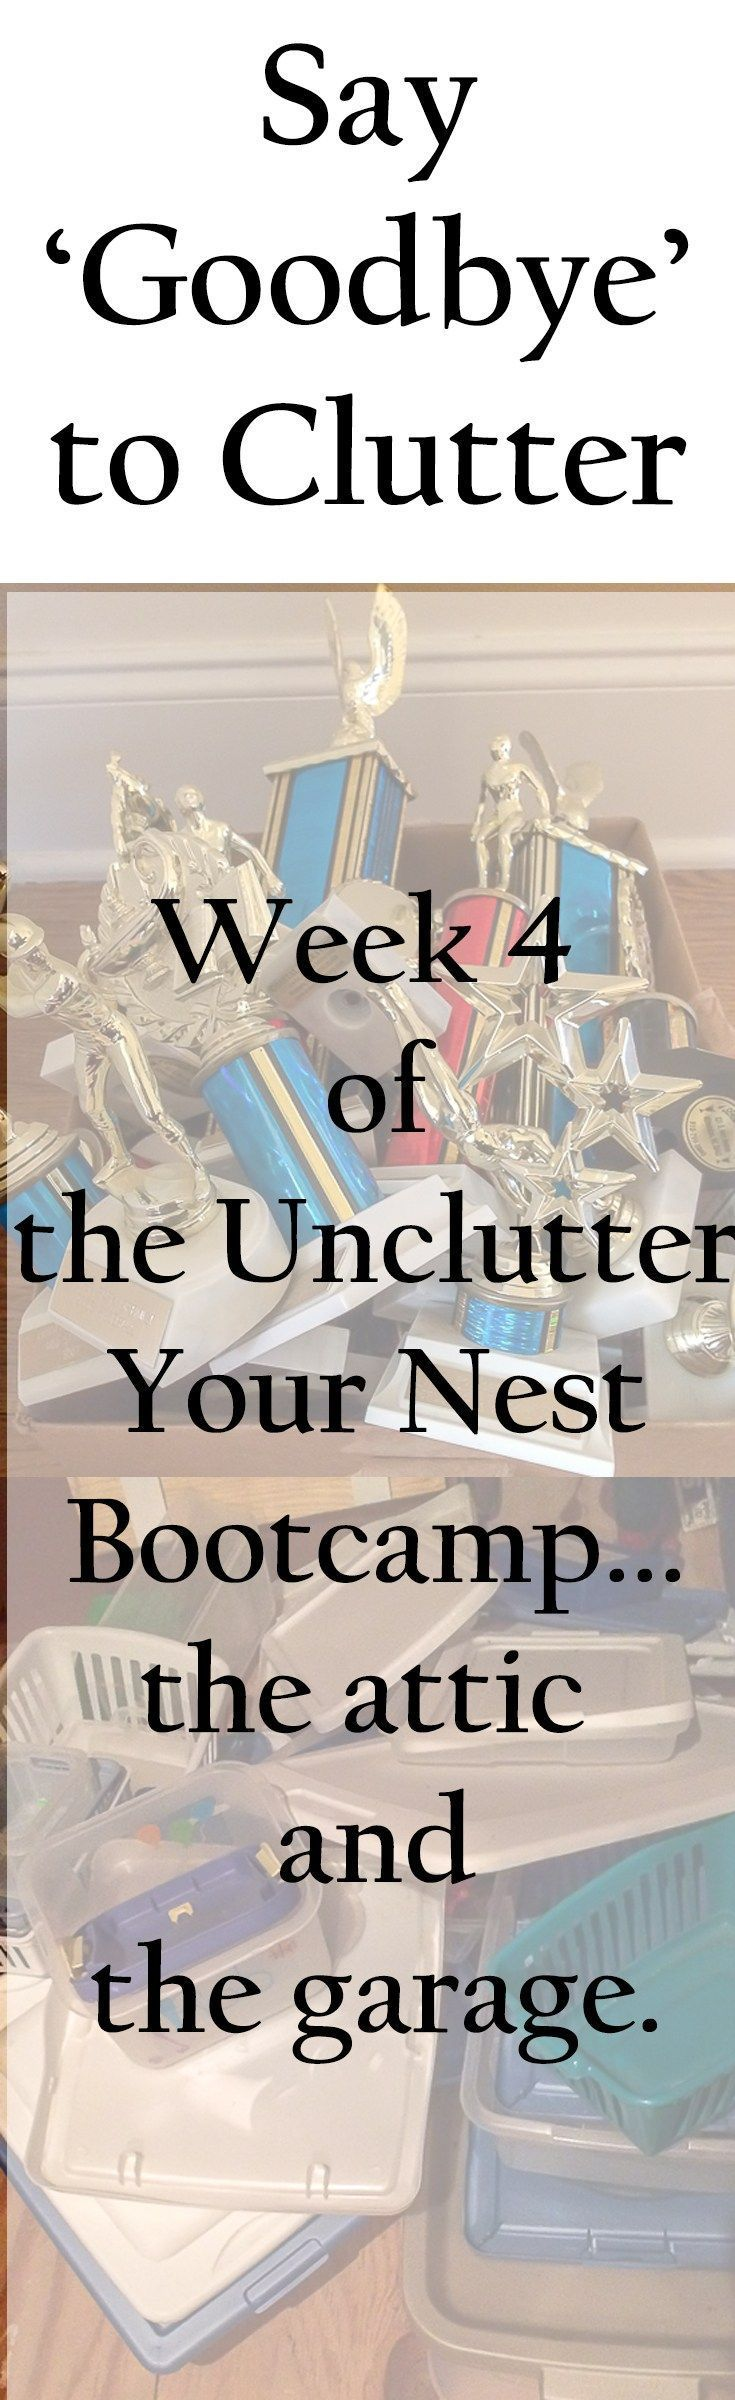 The last week of the Unclutter your Nest Bootcamp 2016 and we are focused on the attic and the garage. All in all, I removed 1,330 pounds of clutter from my home over the 4-week period. #cluttergarage #decluttermyhouse